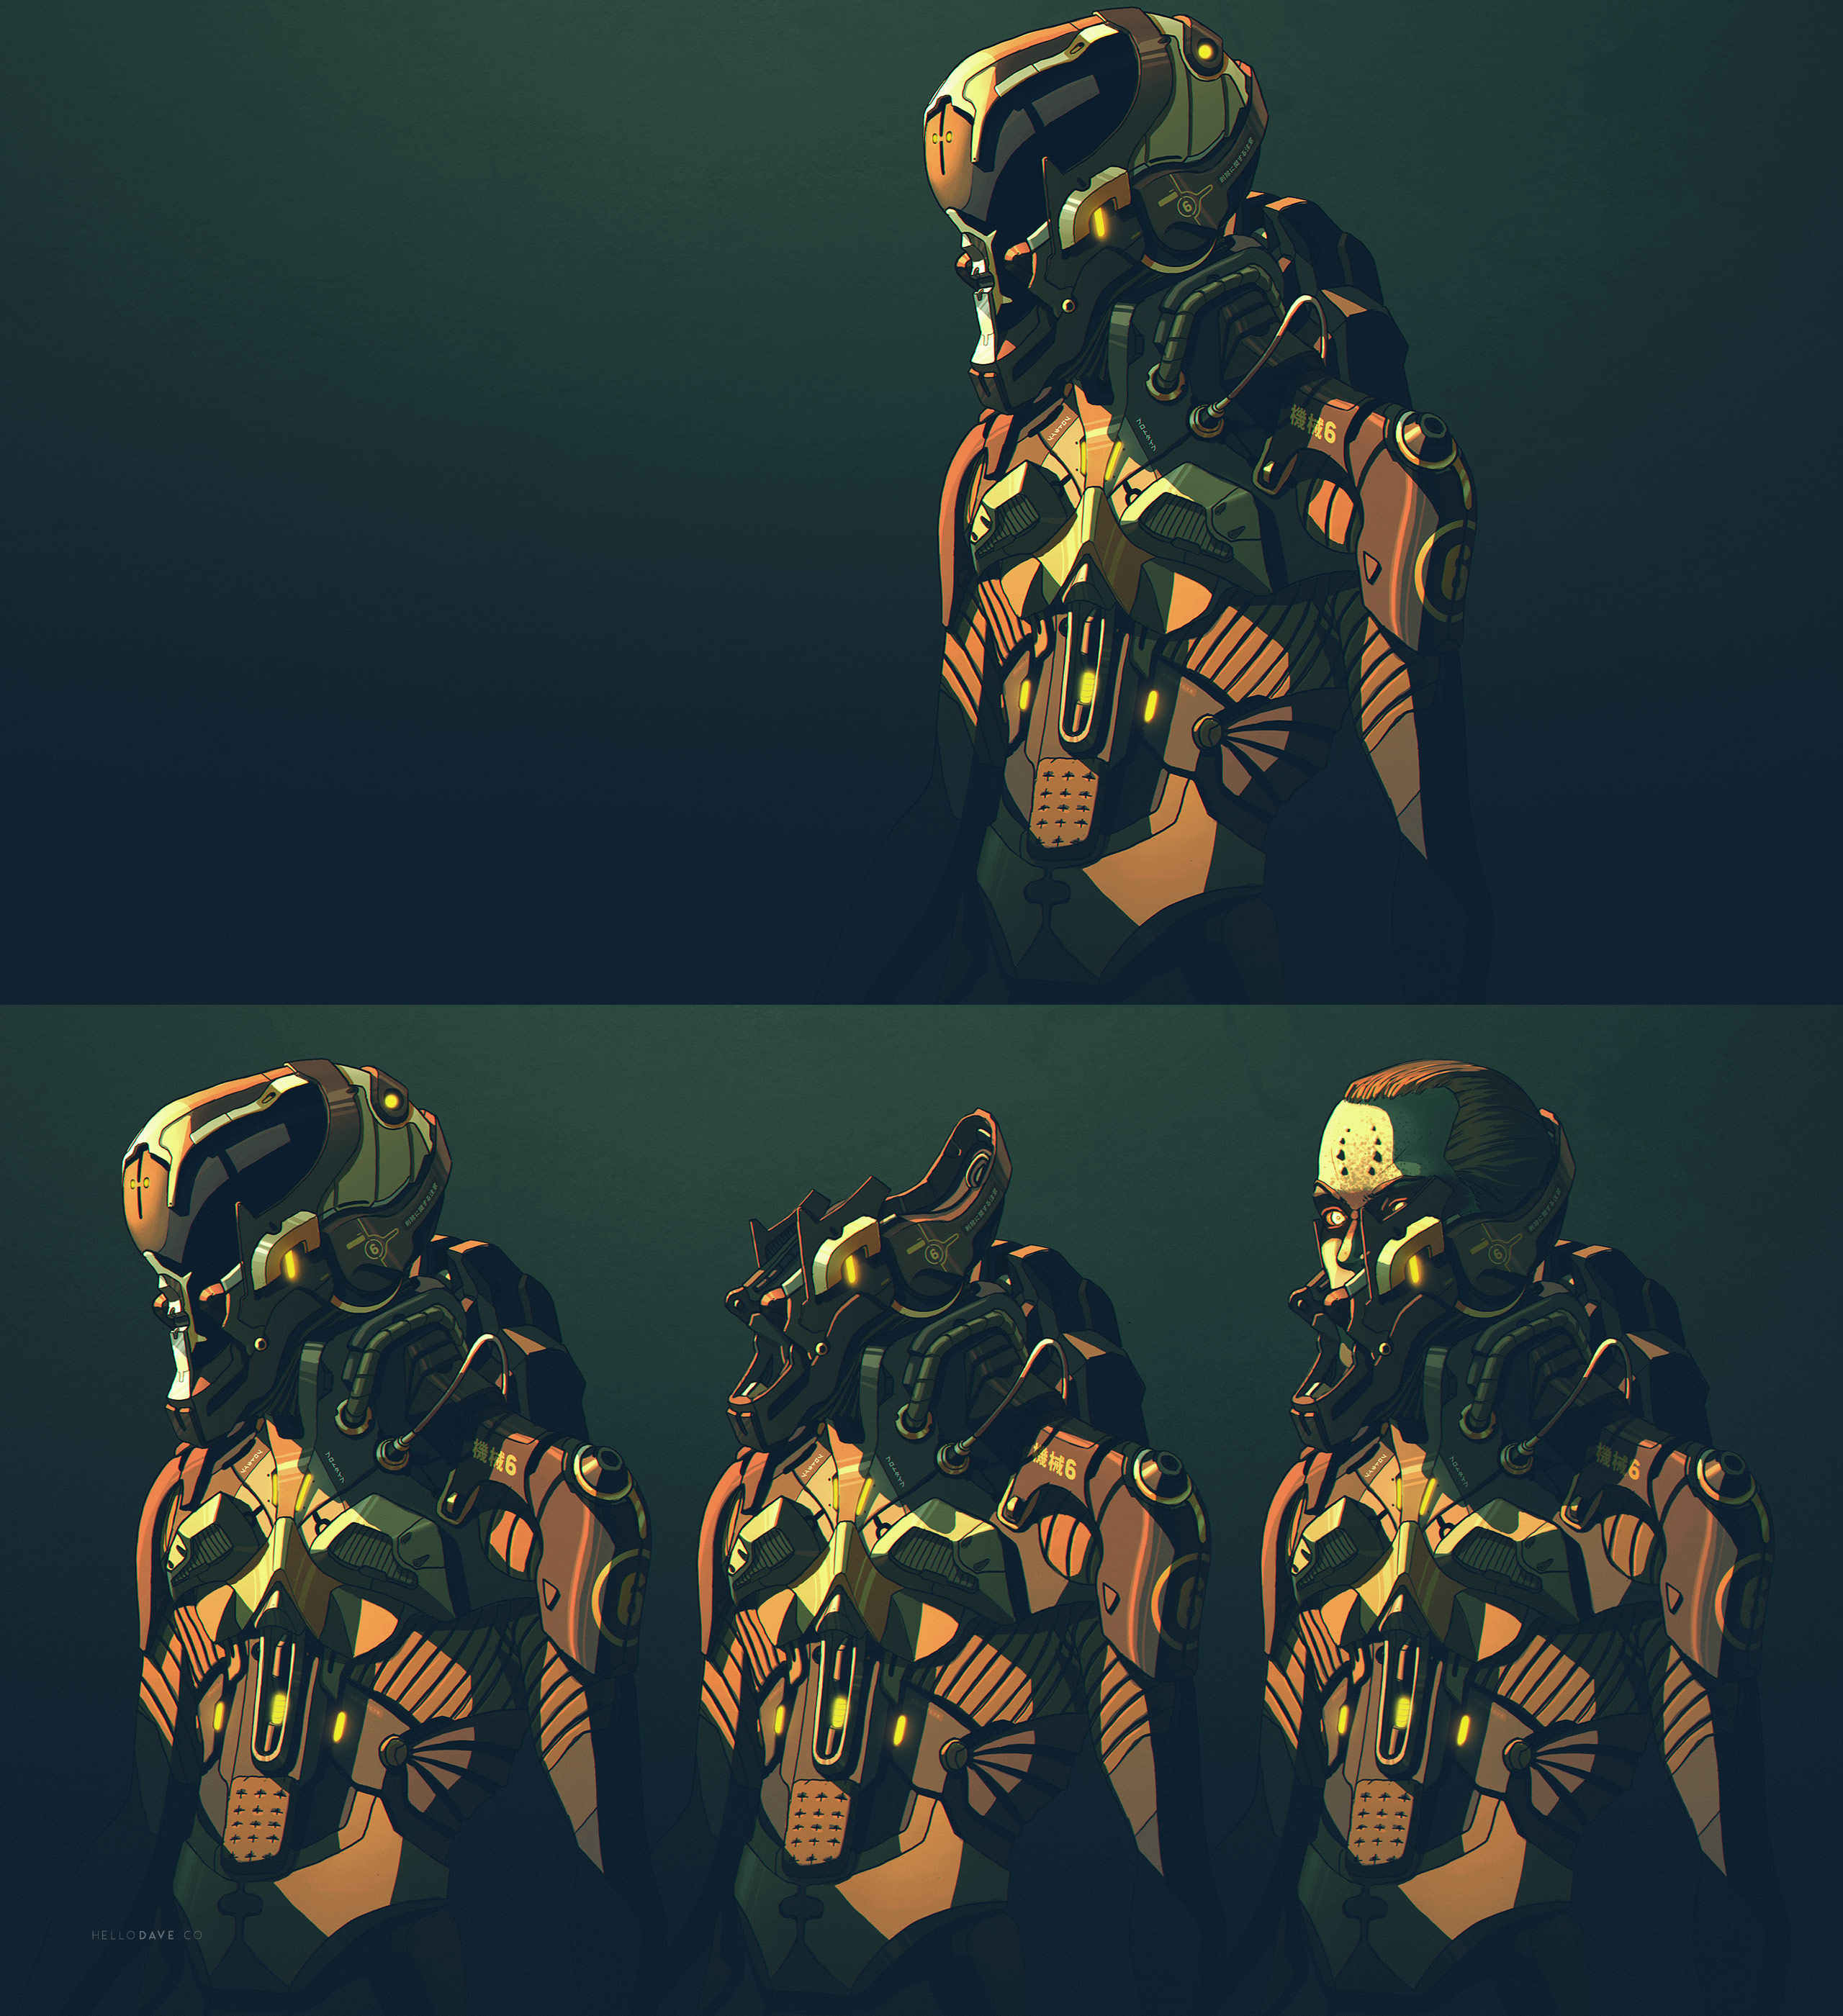 Sci-fi suit-armor Anime style by dchan on DeviantArt